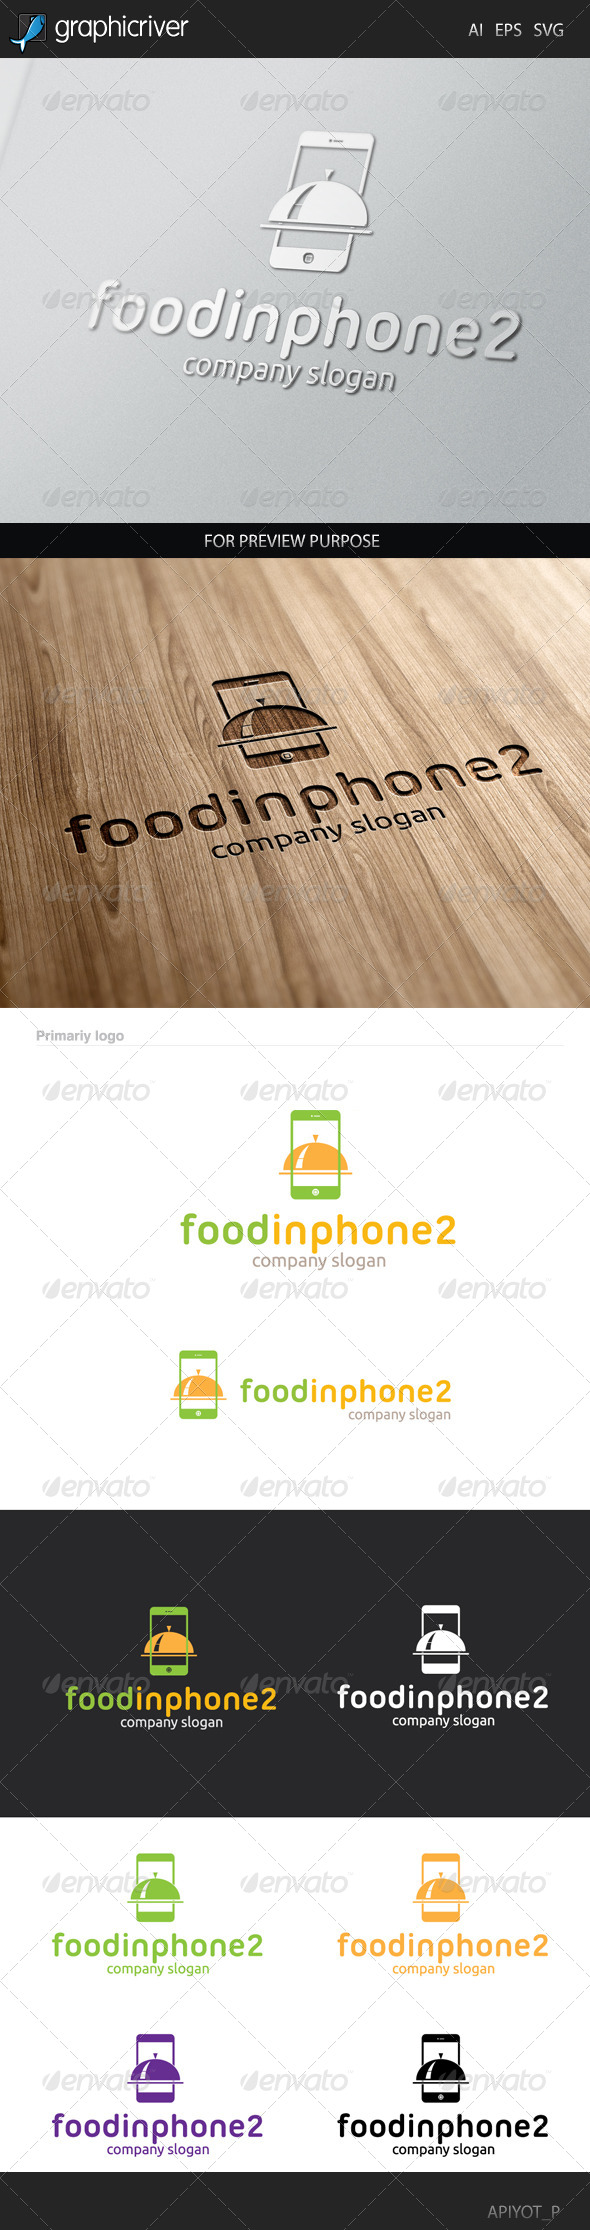 GraphicRiver Food Inphone 8305107